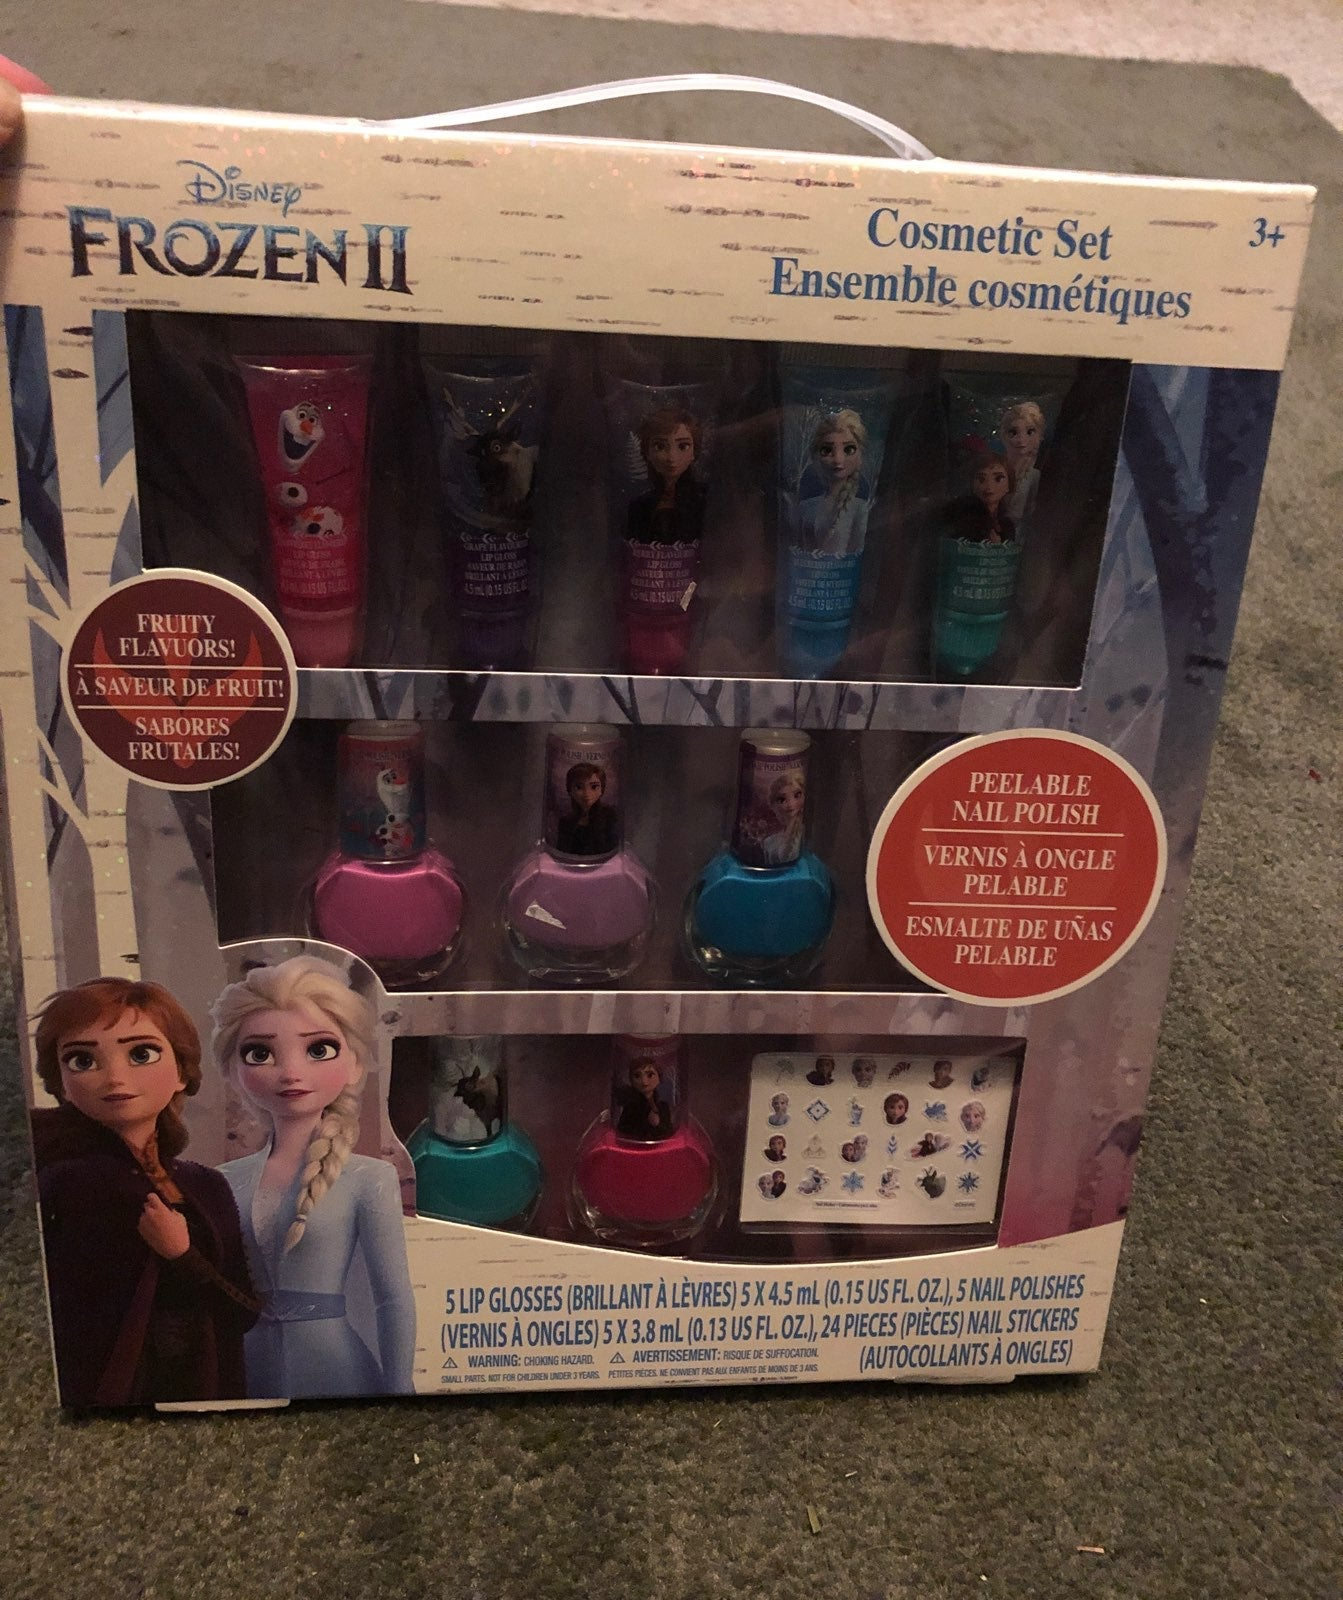 A Disney Frozen 2 Sparkly Cosmetic Set